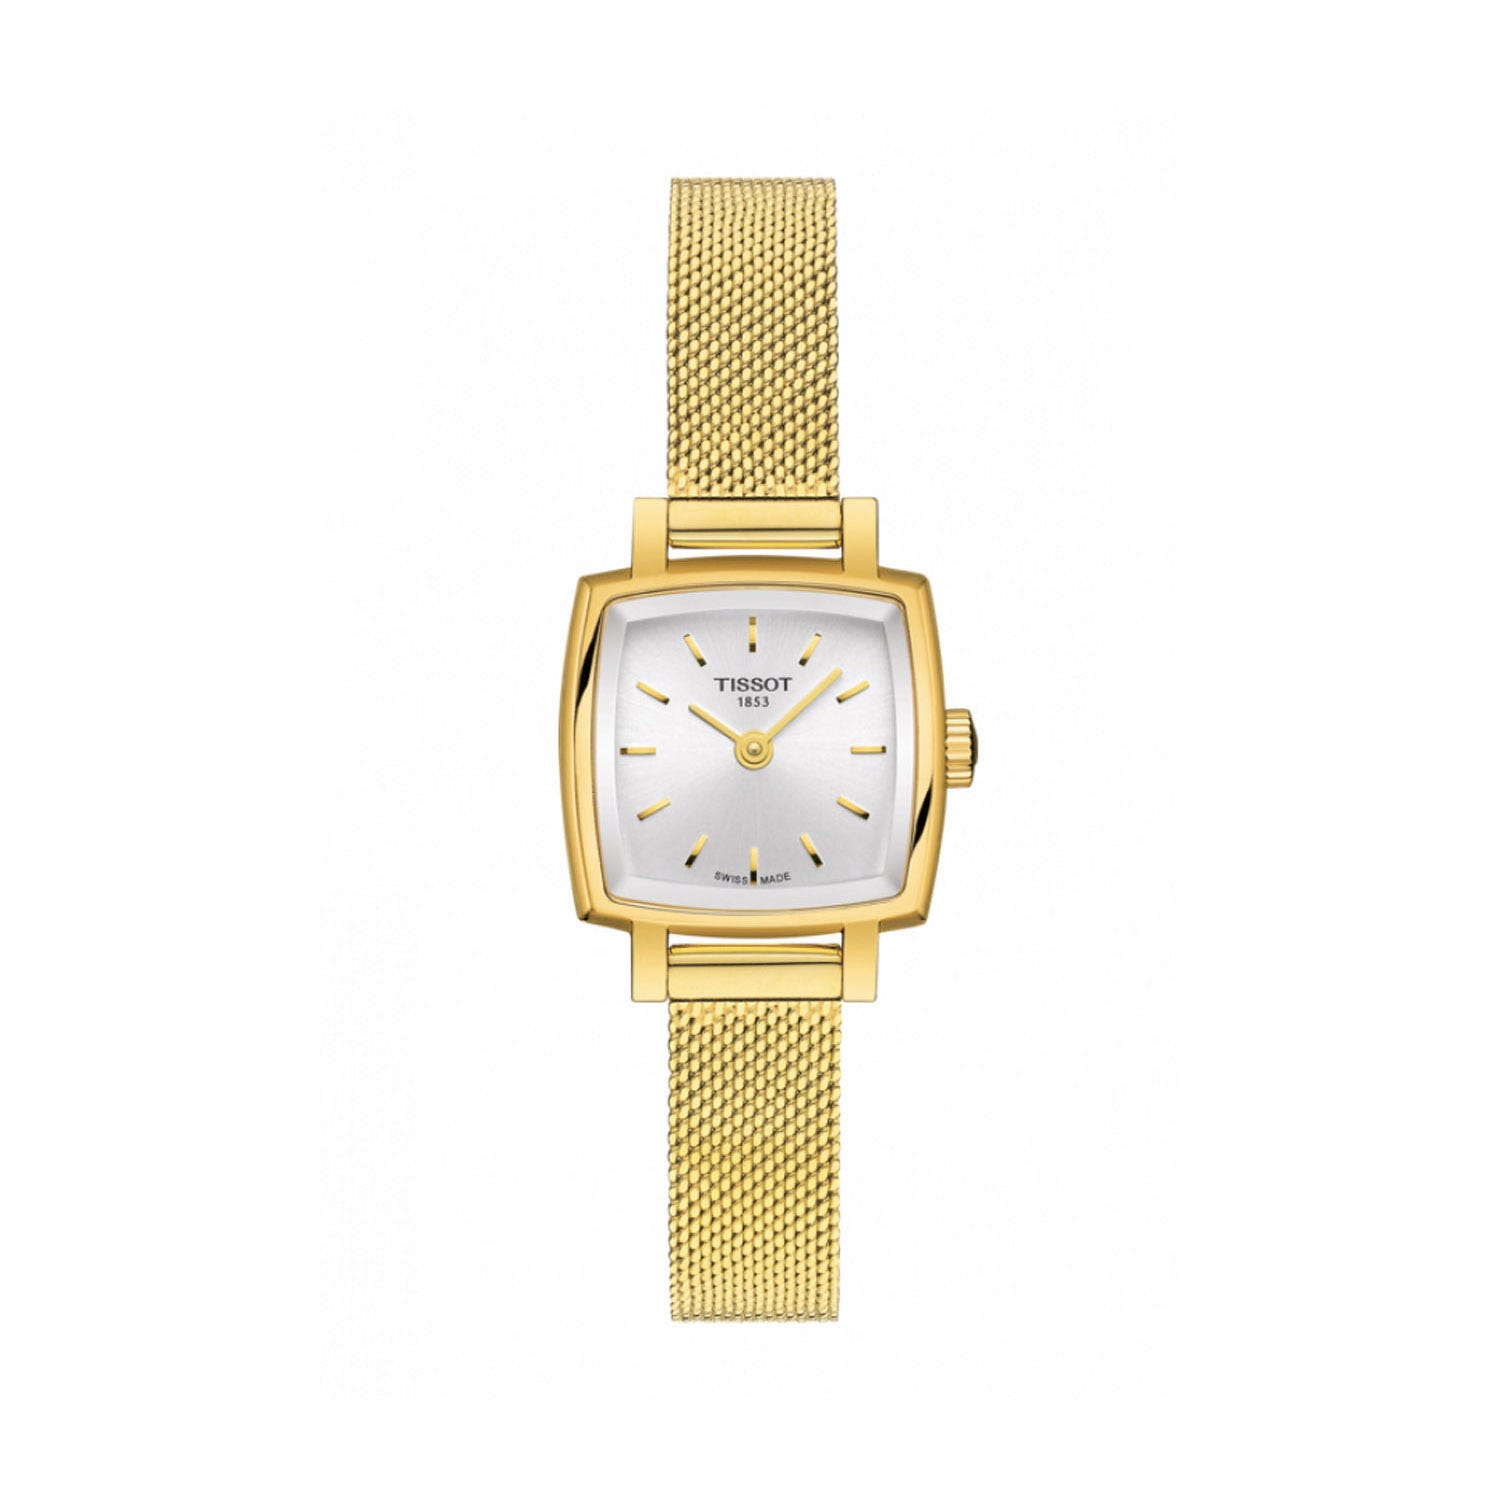 Tissot Lovely Square Yellow Gold-Toned Bracelet Strap 20mm Ladies' Watch